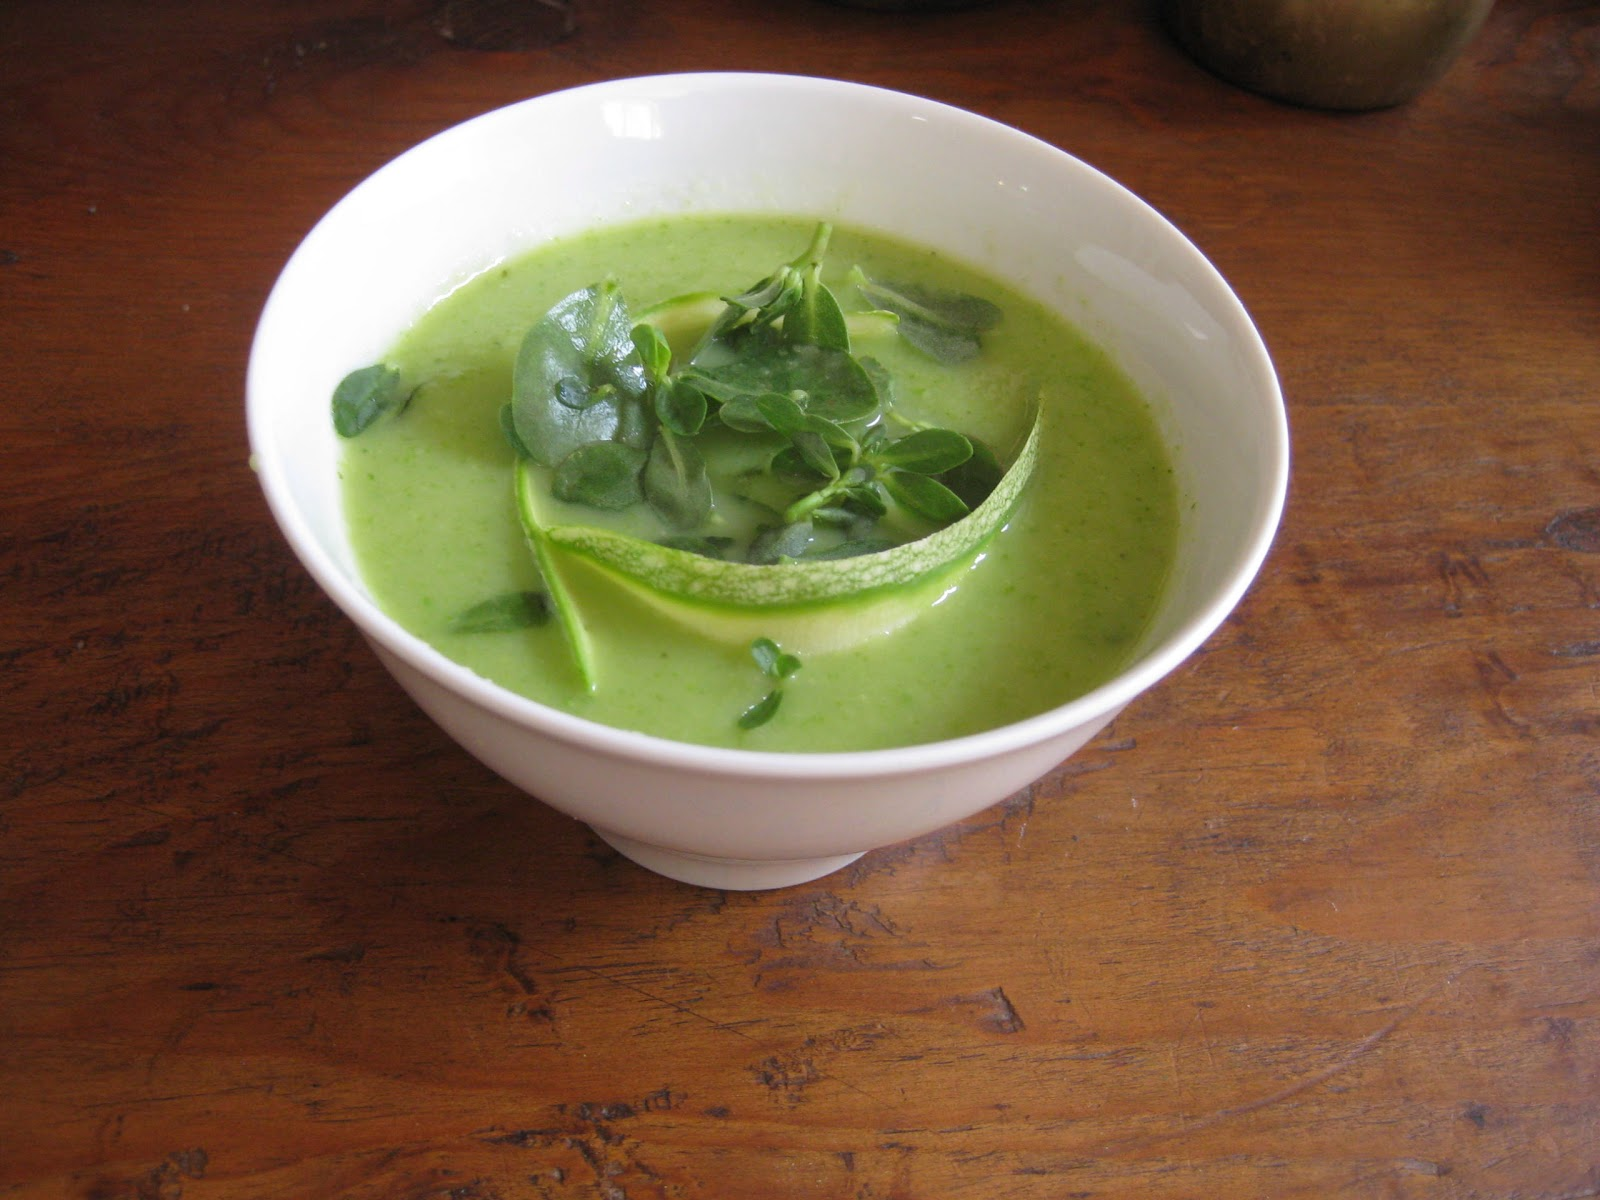 Flavors of the Sun: Chilled Zucchini Soup with Purslane